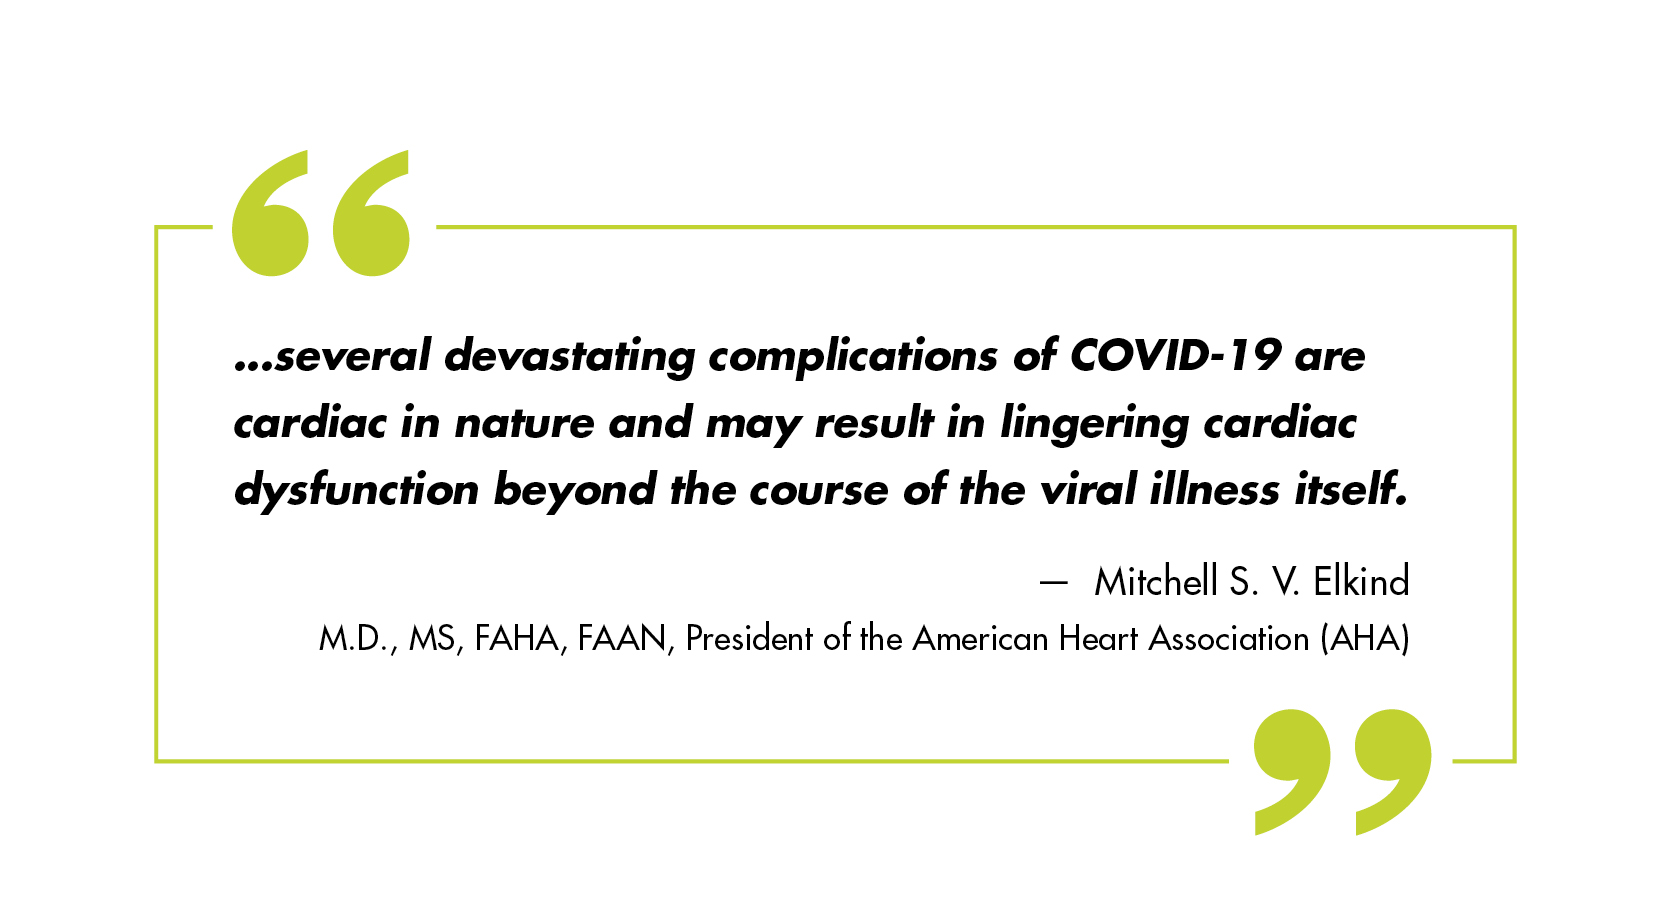 …several devastating complications of COVID-19 are cardiac in nature and may result in lingering cardiac dysfunction beyond the course of the viral illness itself. – Mitchell S. V. Elkind, M.D., MS, FAHA, FAAN, president of the American Heart Association (AHA)